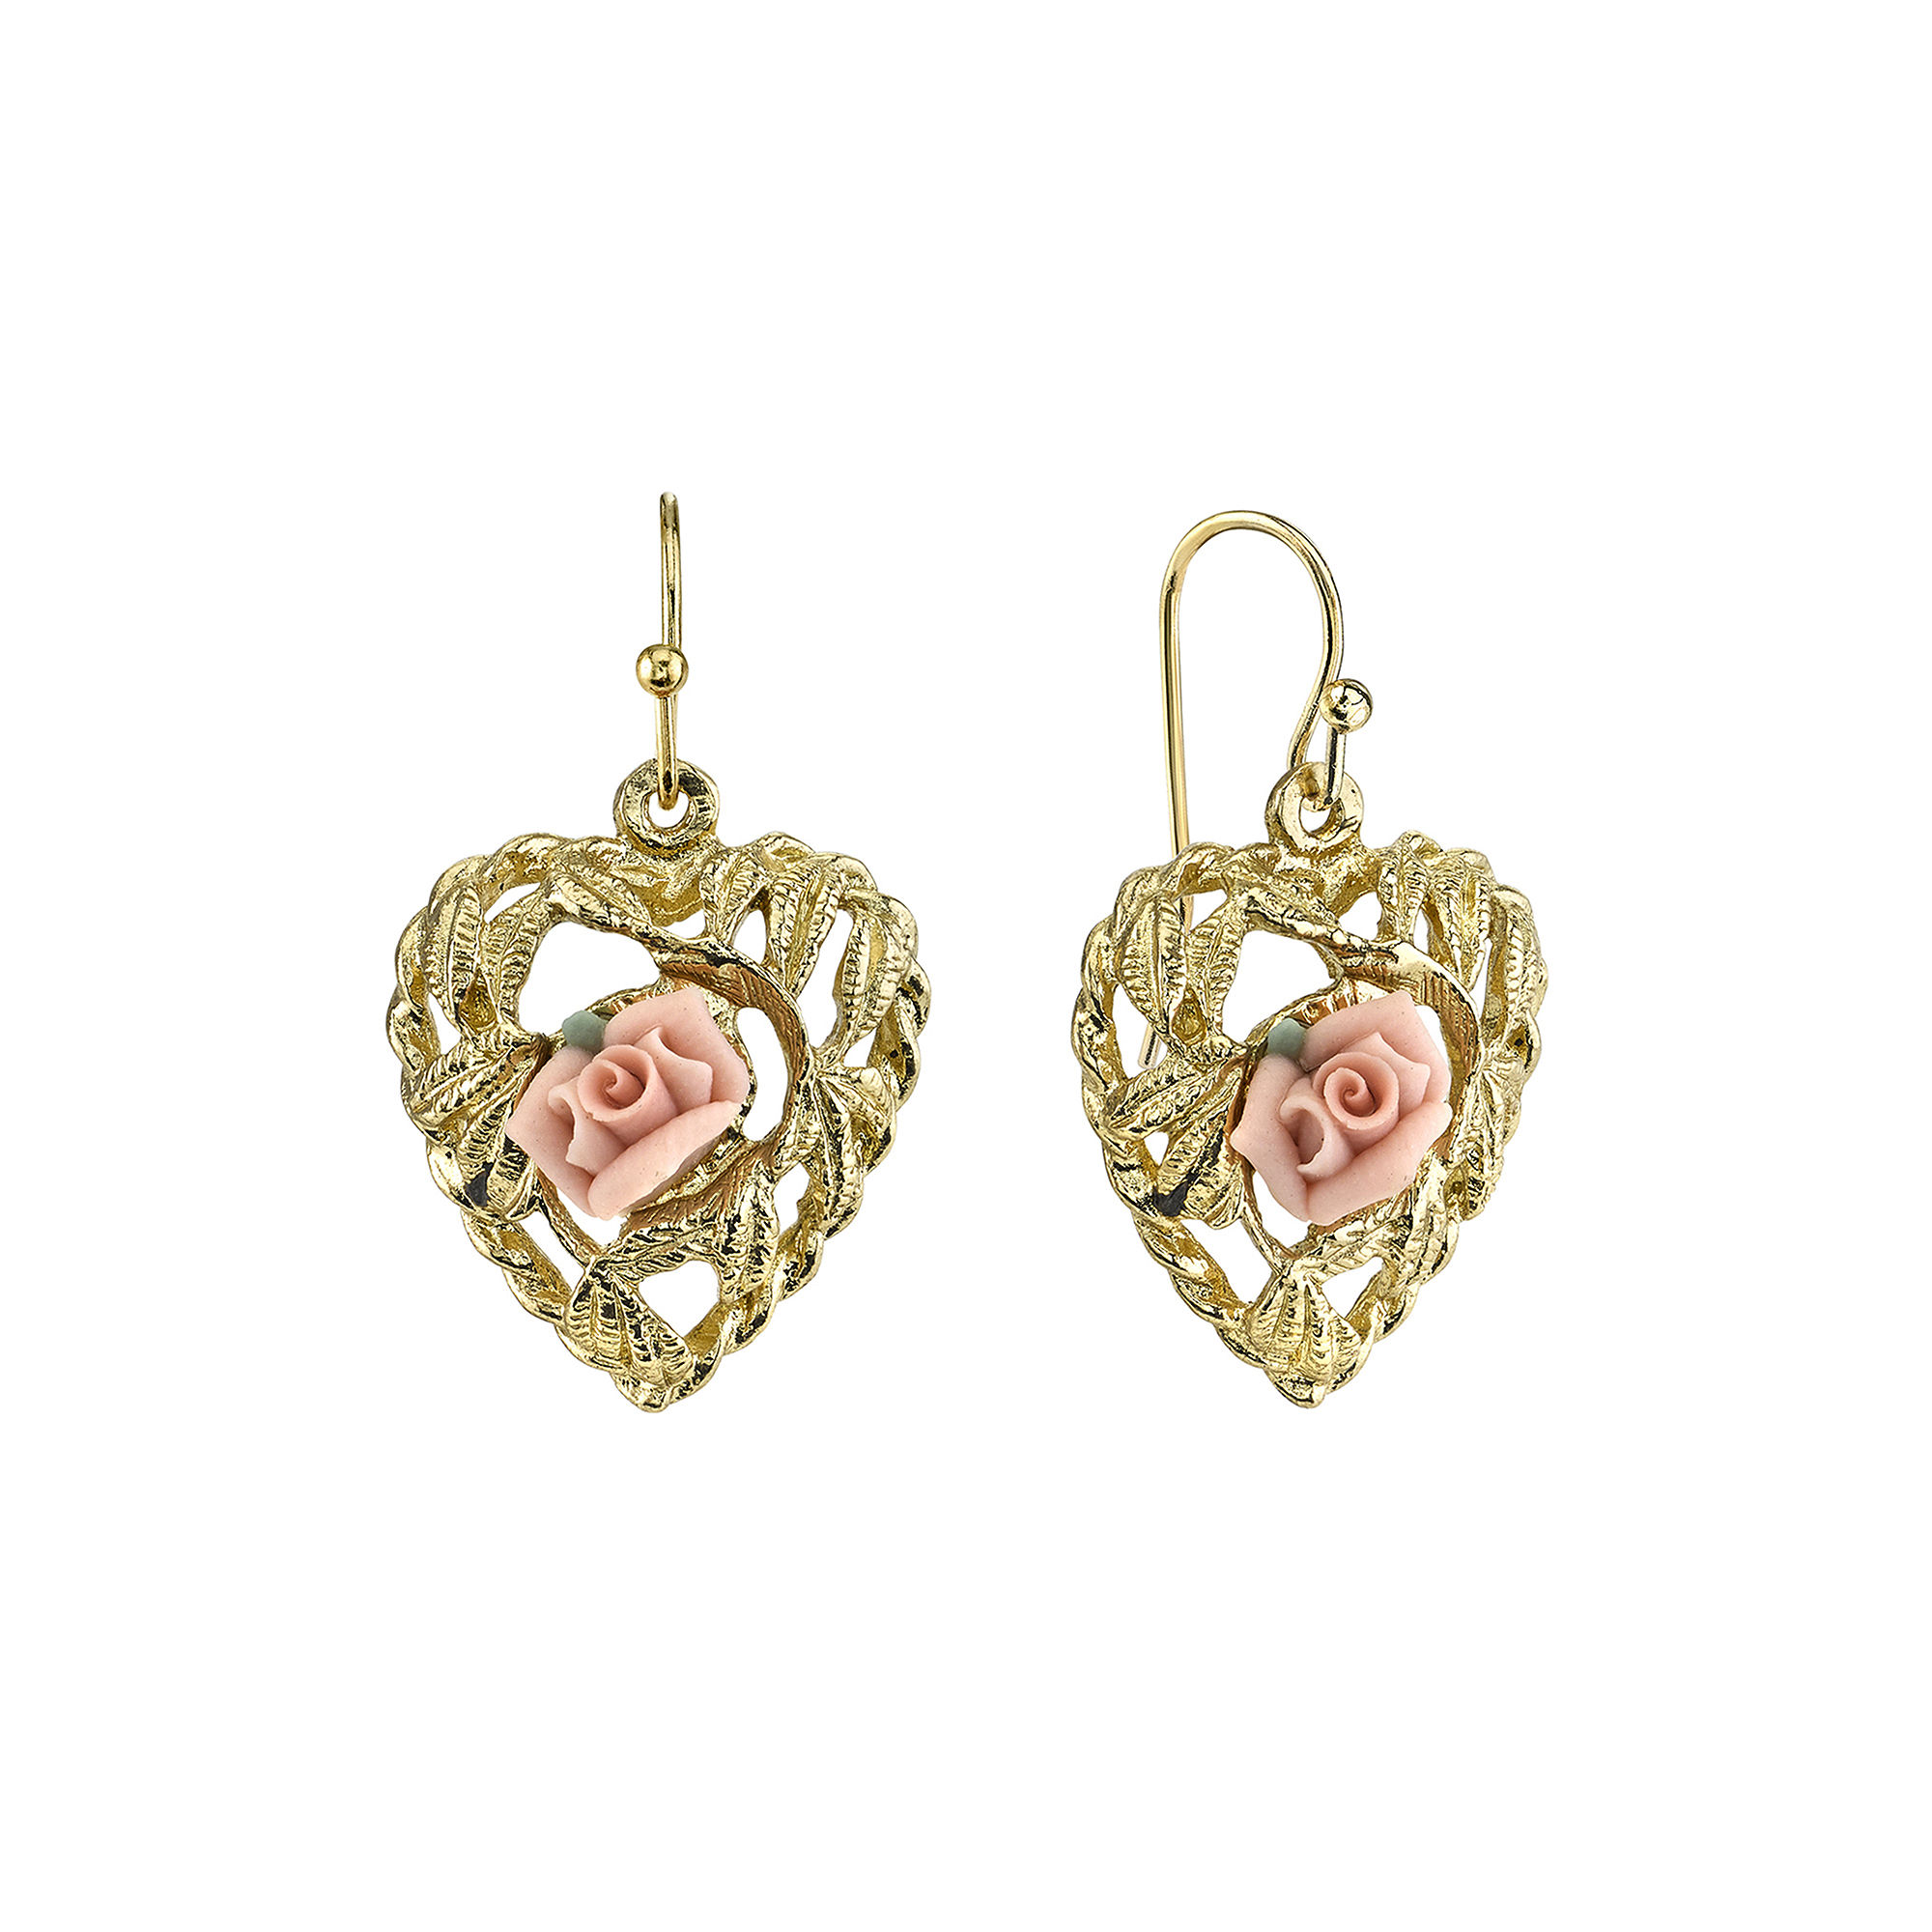 1928 Jewelry Pink Rose Gold-Tone Heart Earrings